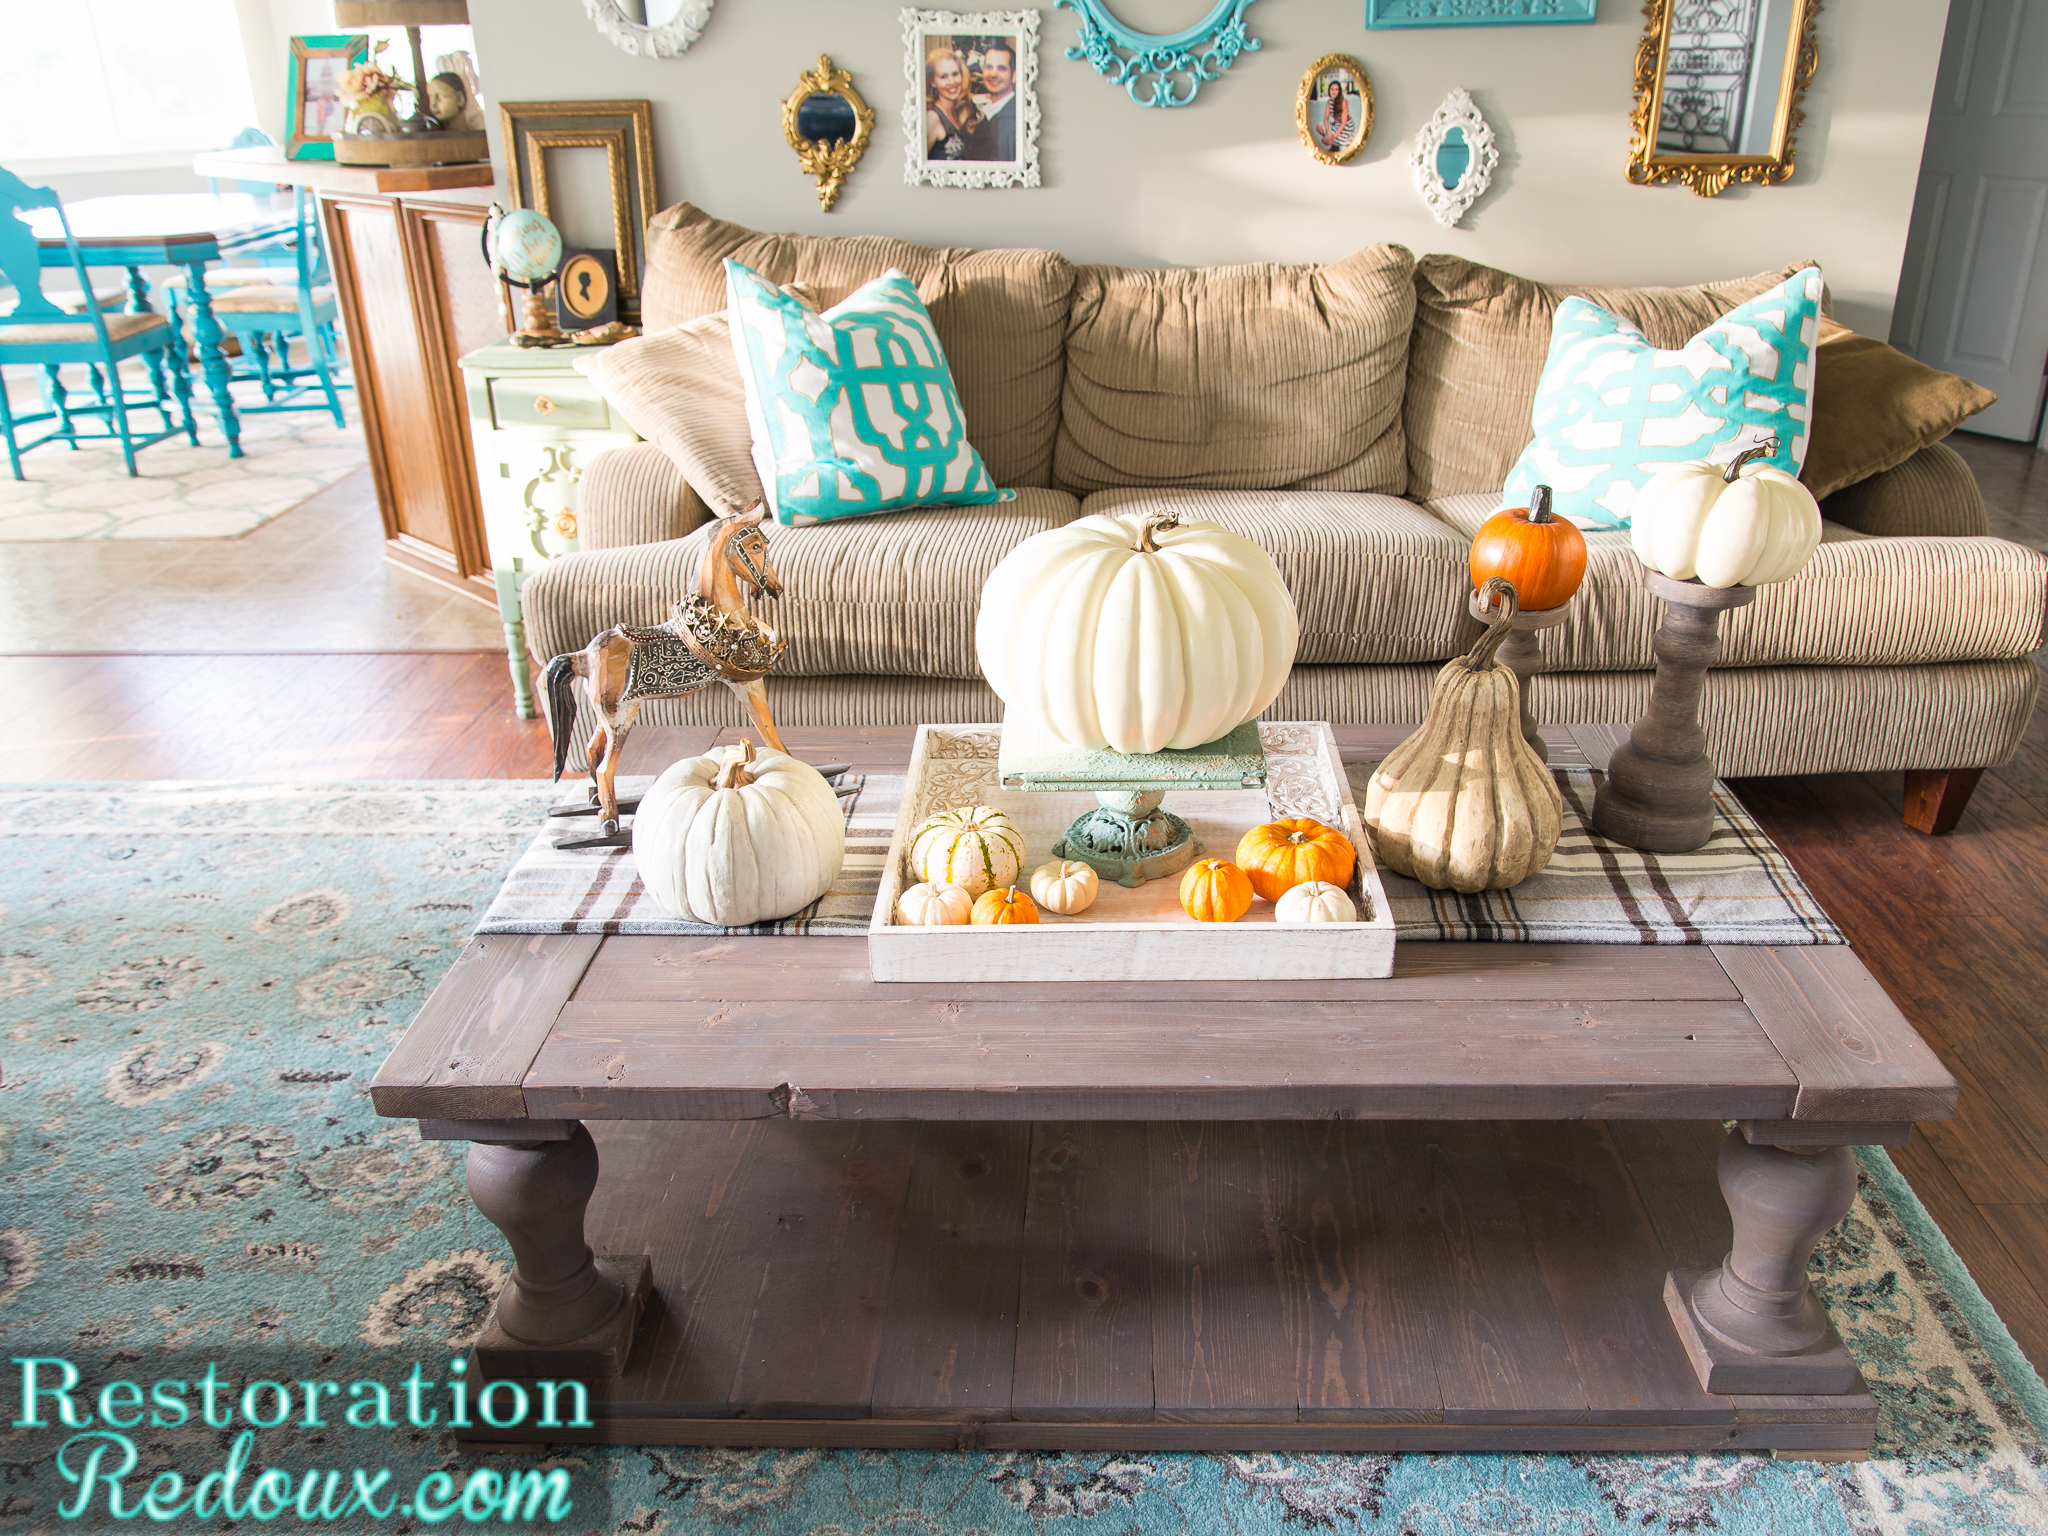 rustic-white-tray-pier1